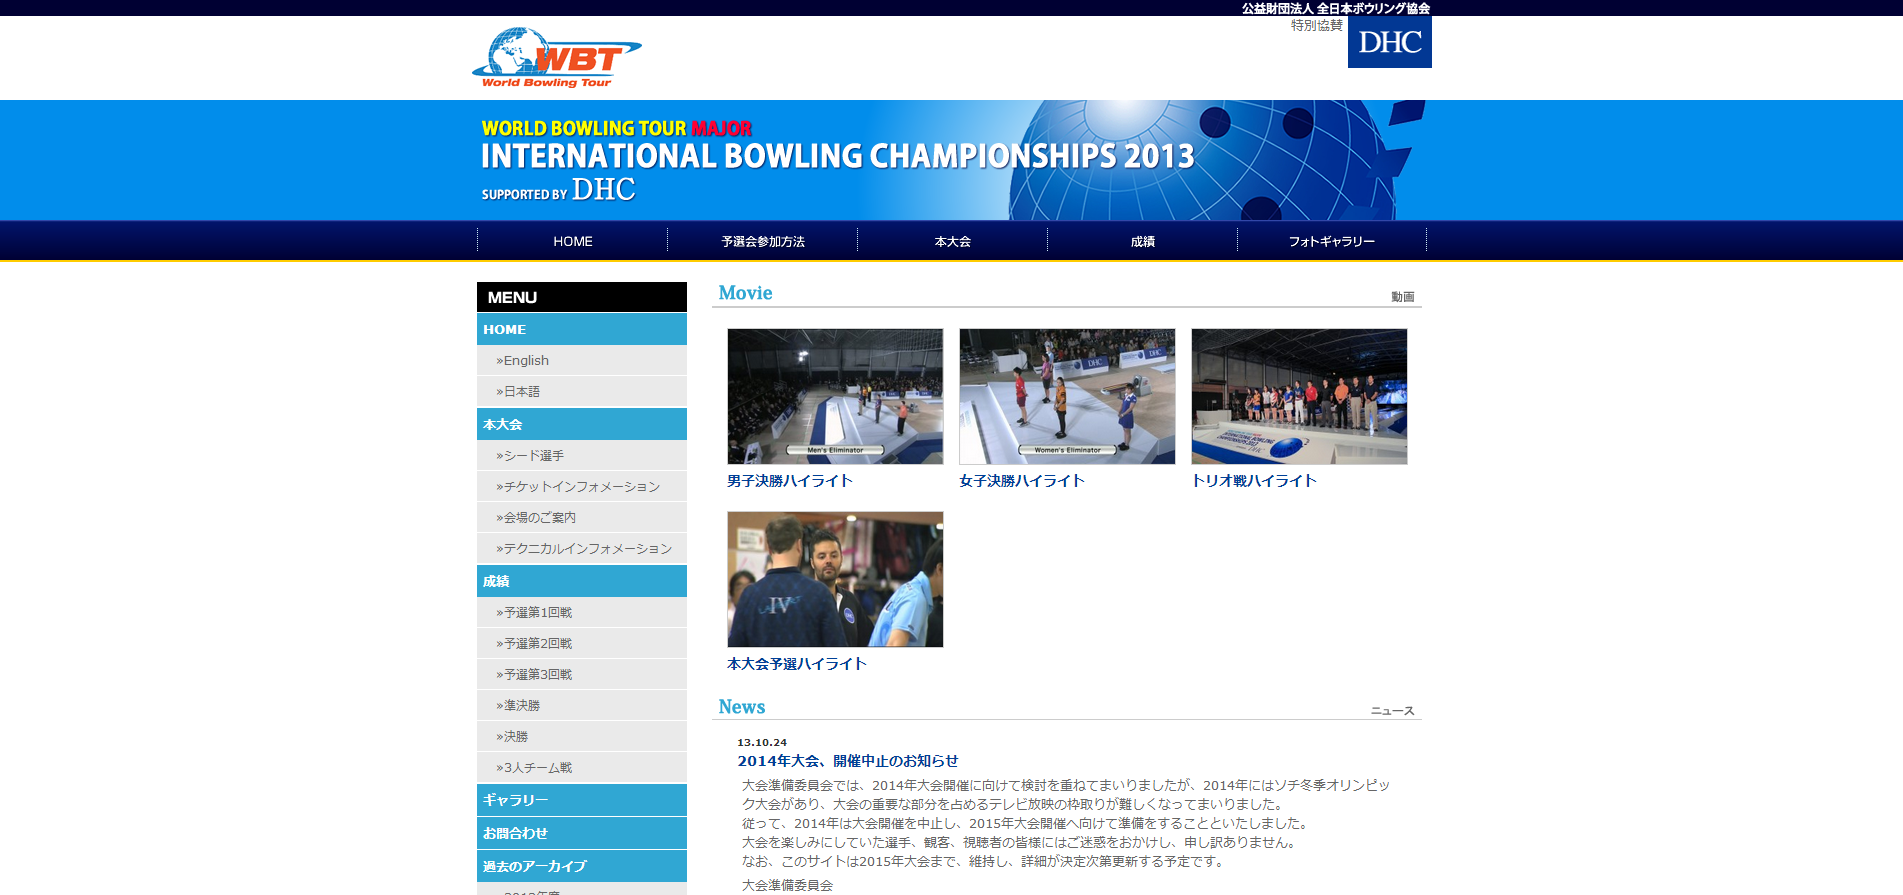 Ja   International Bowling Championships 2012 supported by DHC